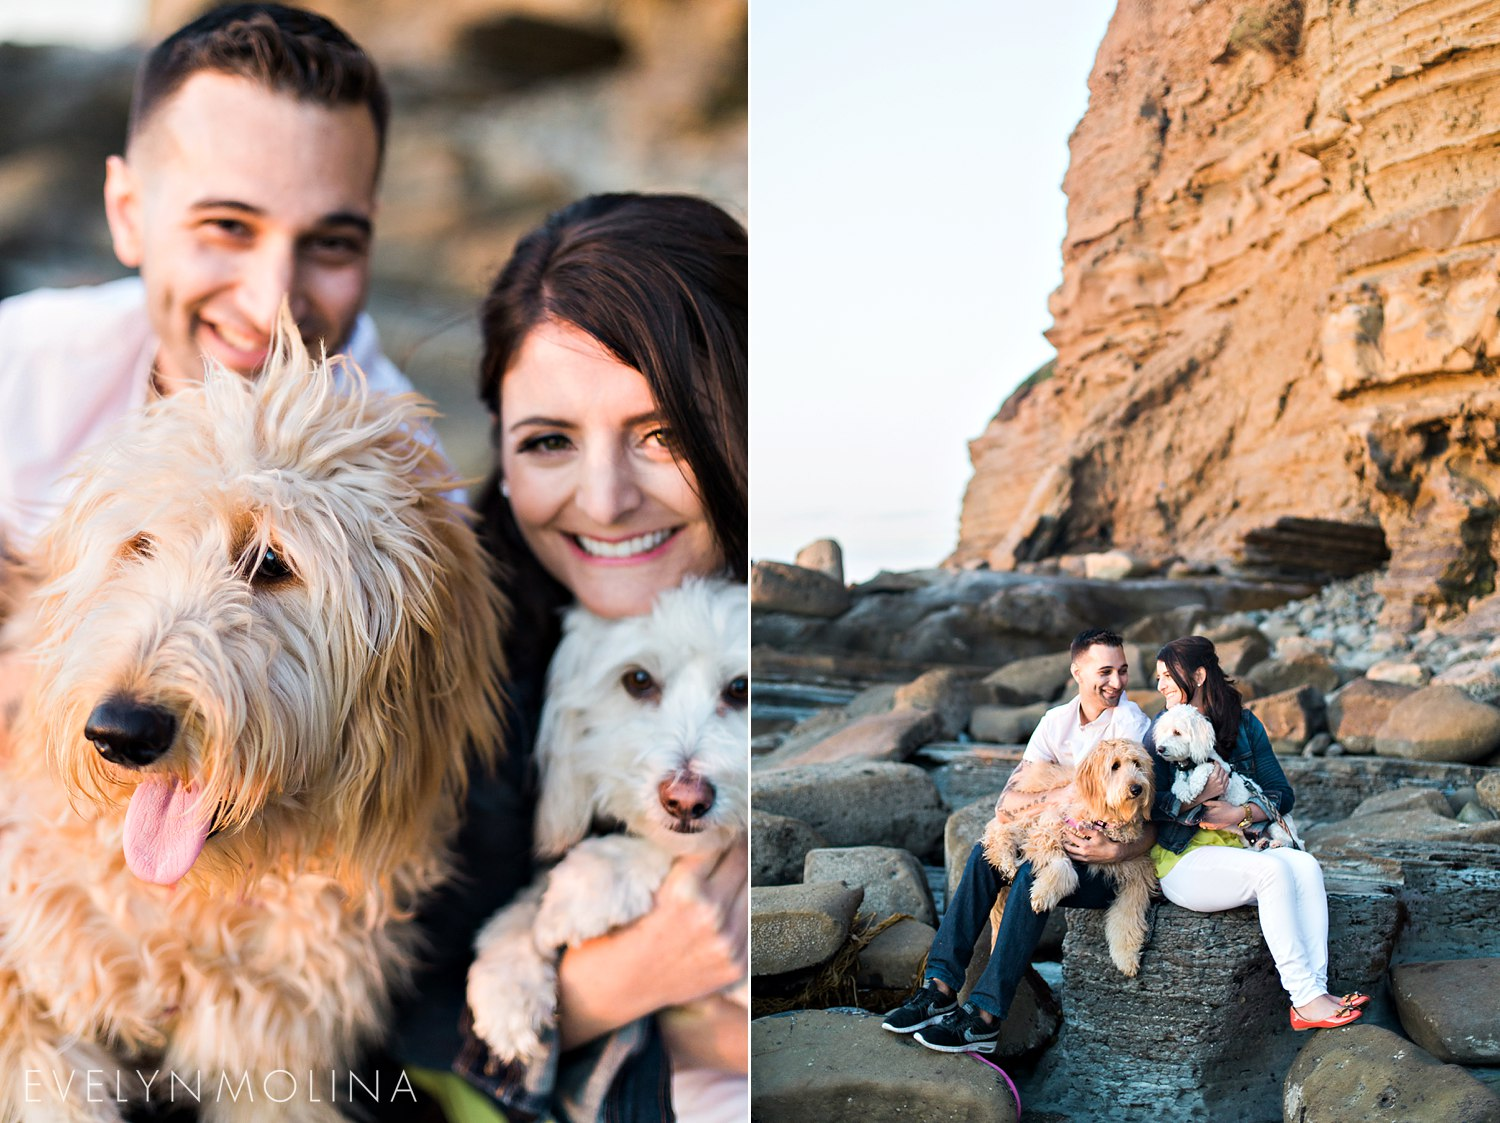 Sunset Cliffs Engagement Session - Carly and Alex - Evelyn Molina Photography_0021.jpg